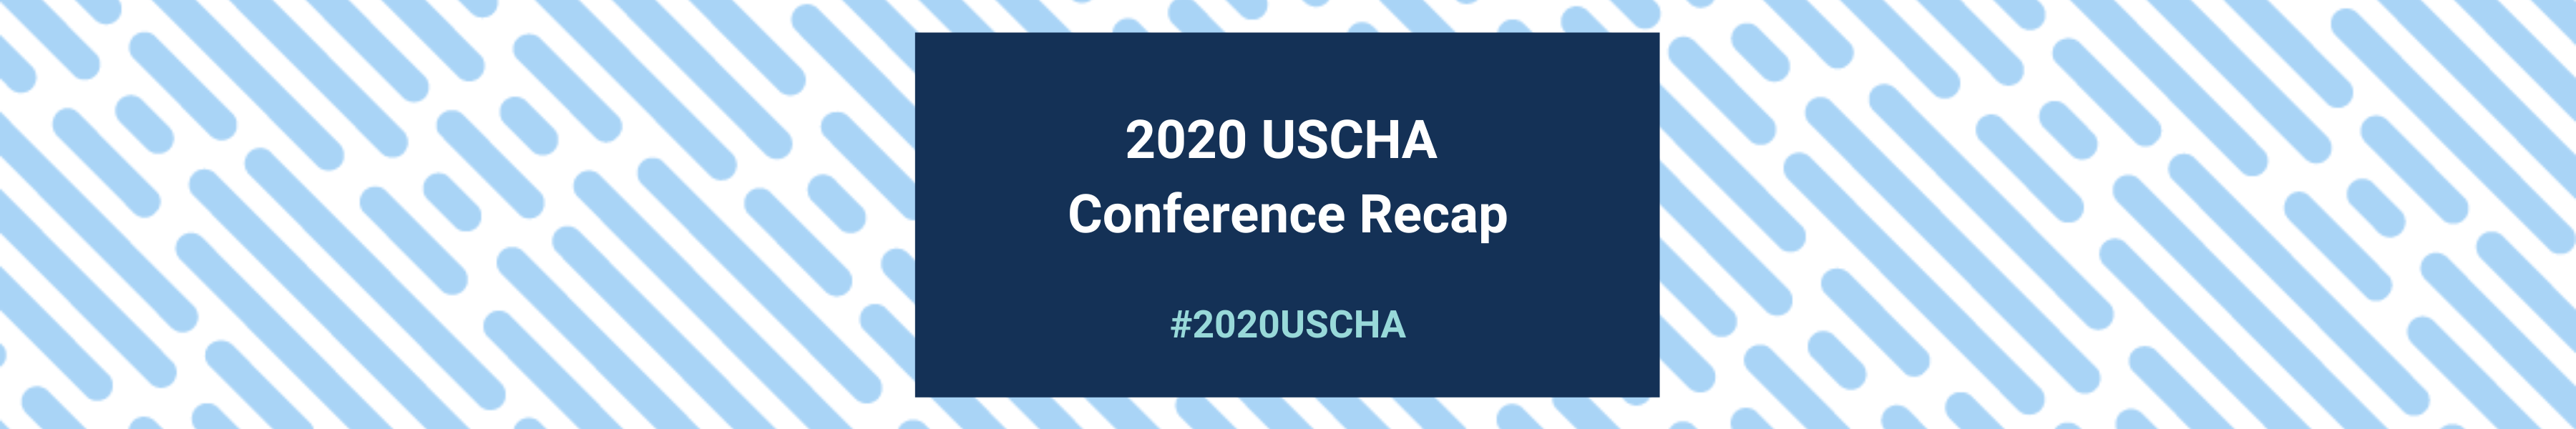 USCHA Virtual Conference Starts October 19th